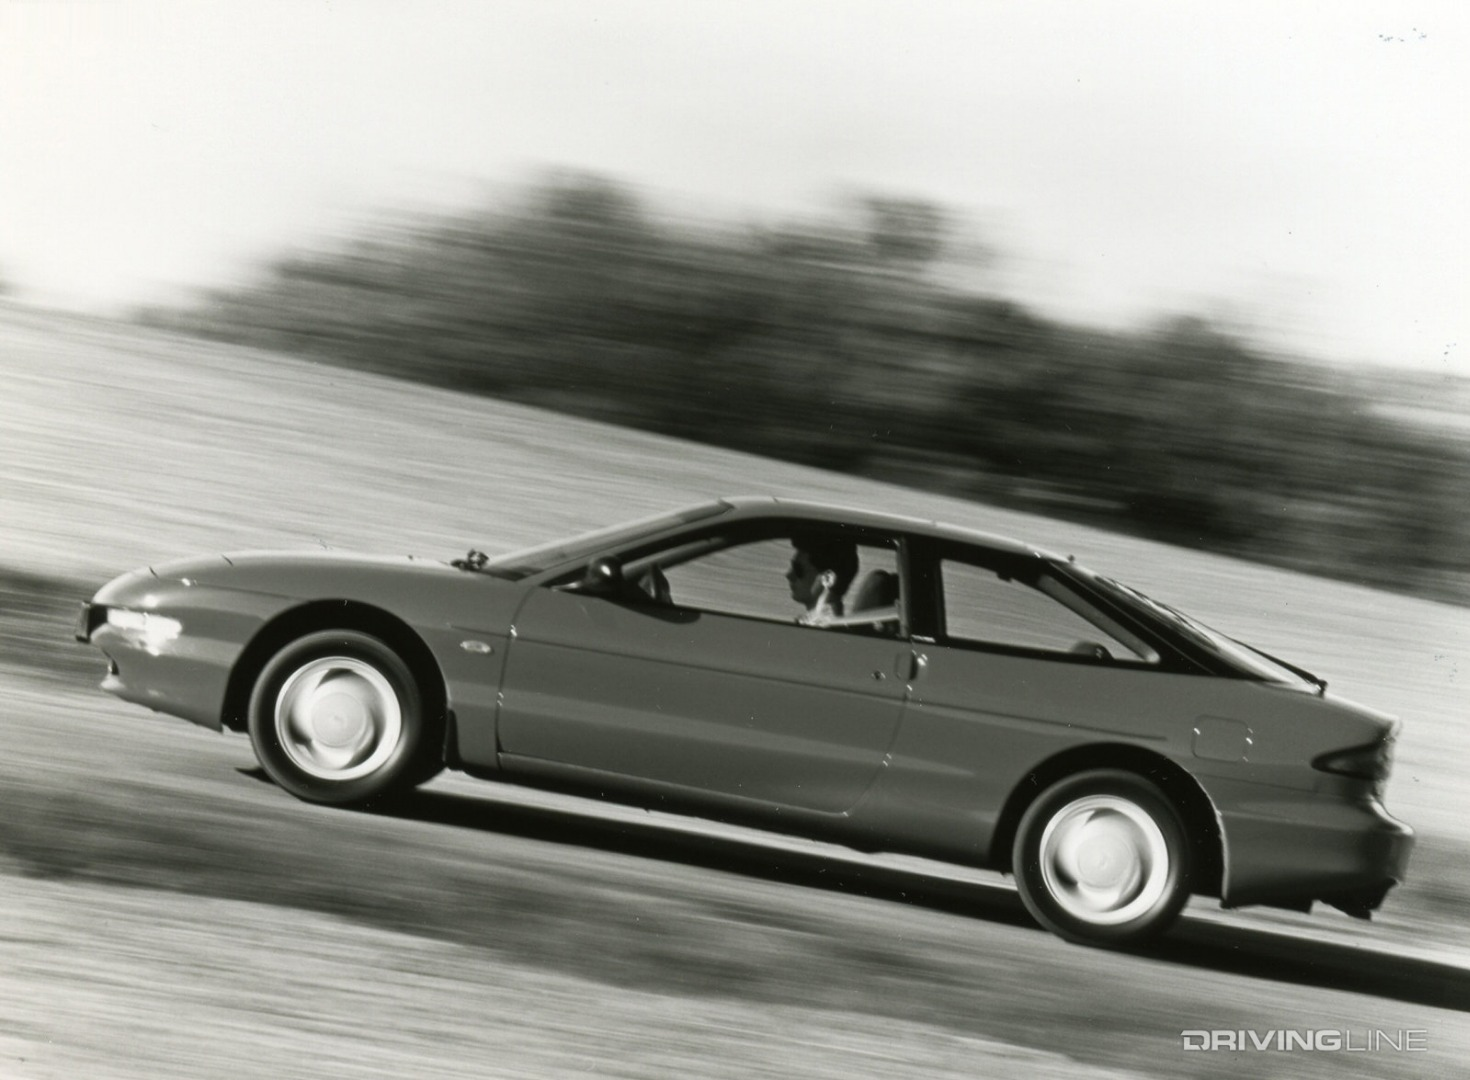 A Brief History Of The Ford Probe, The Mustang Replacement